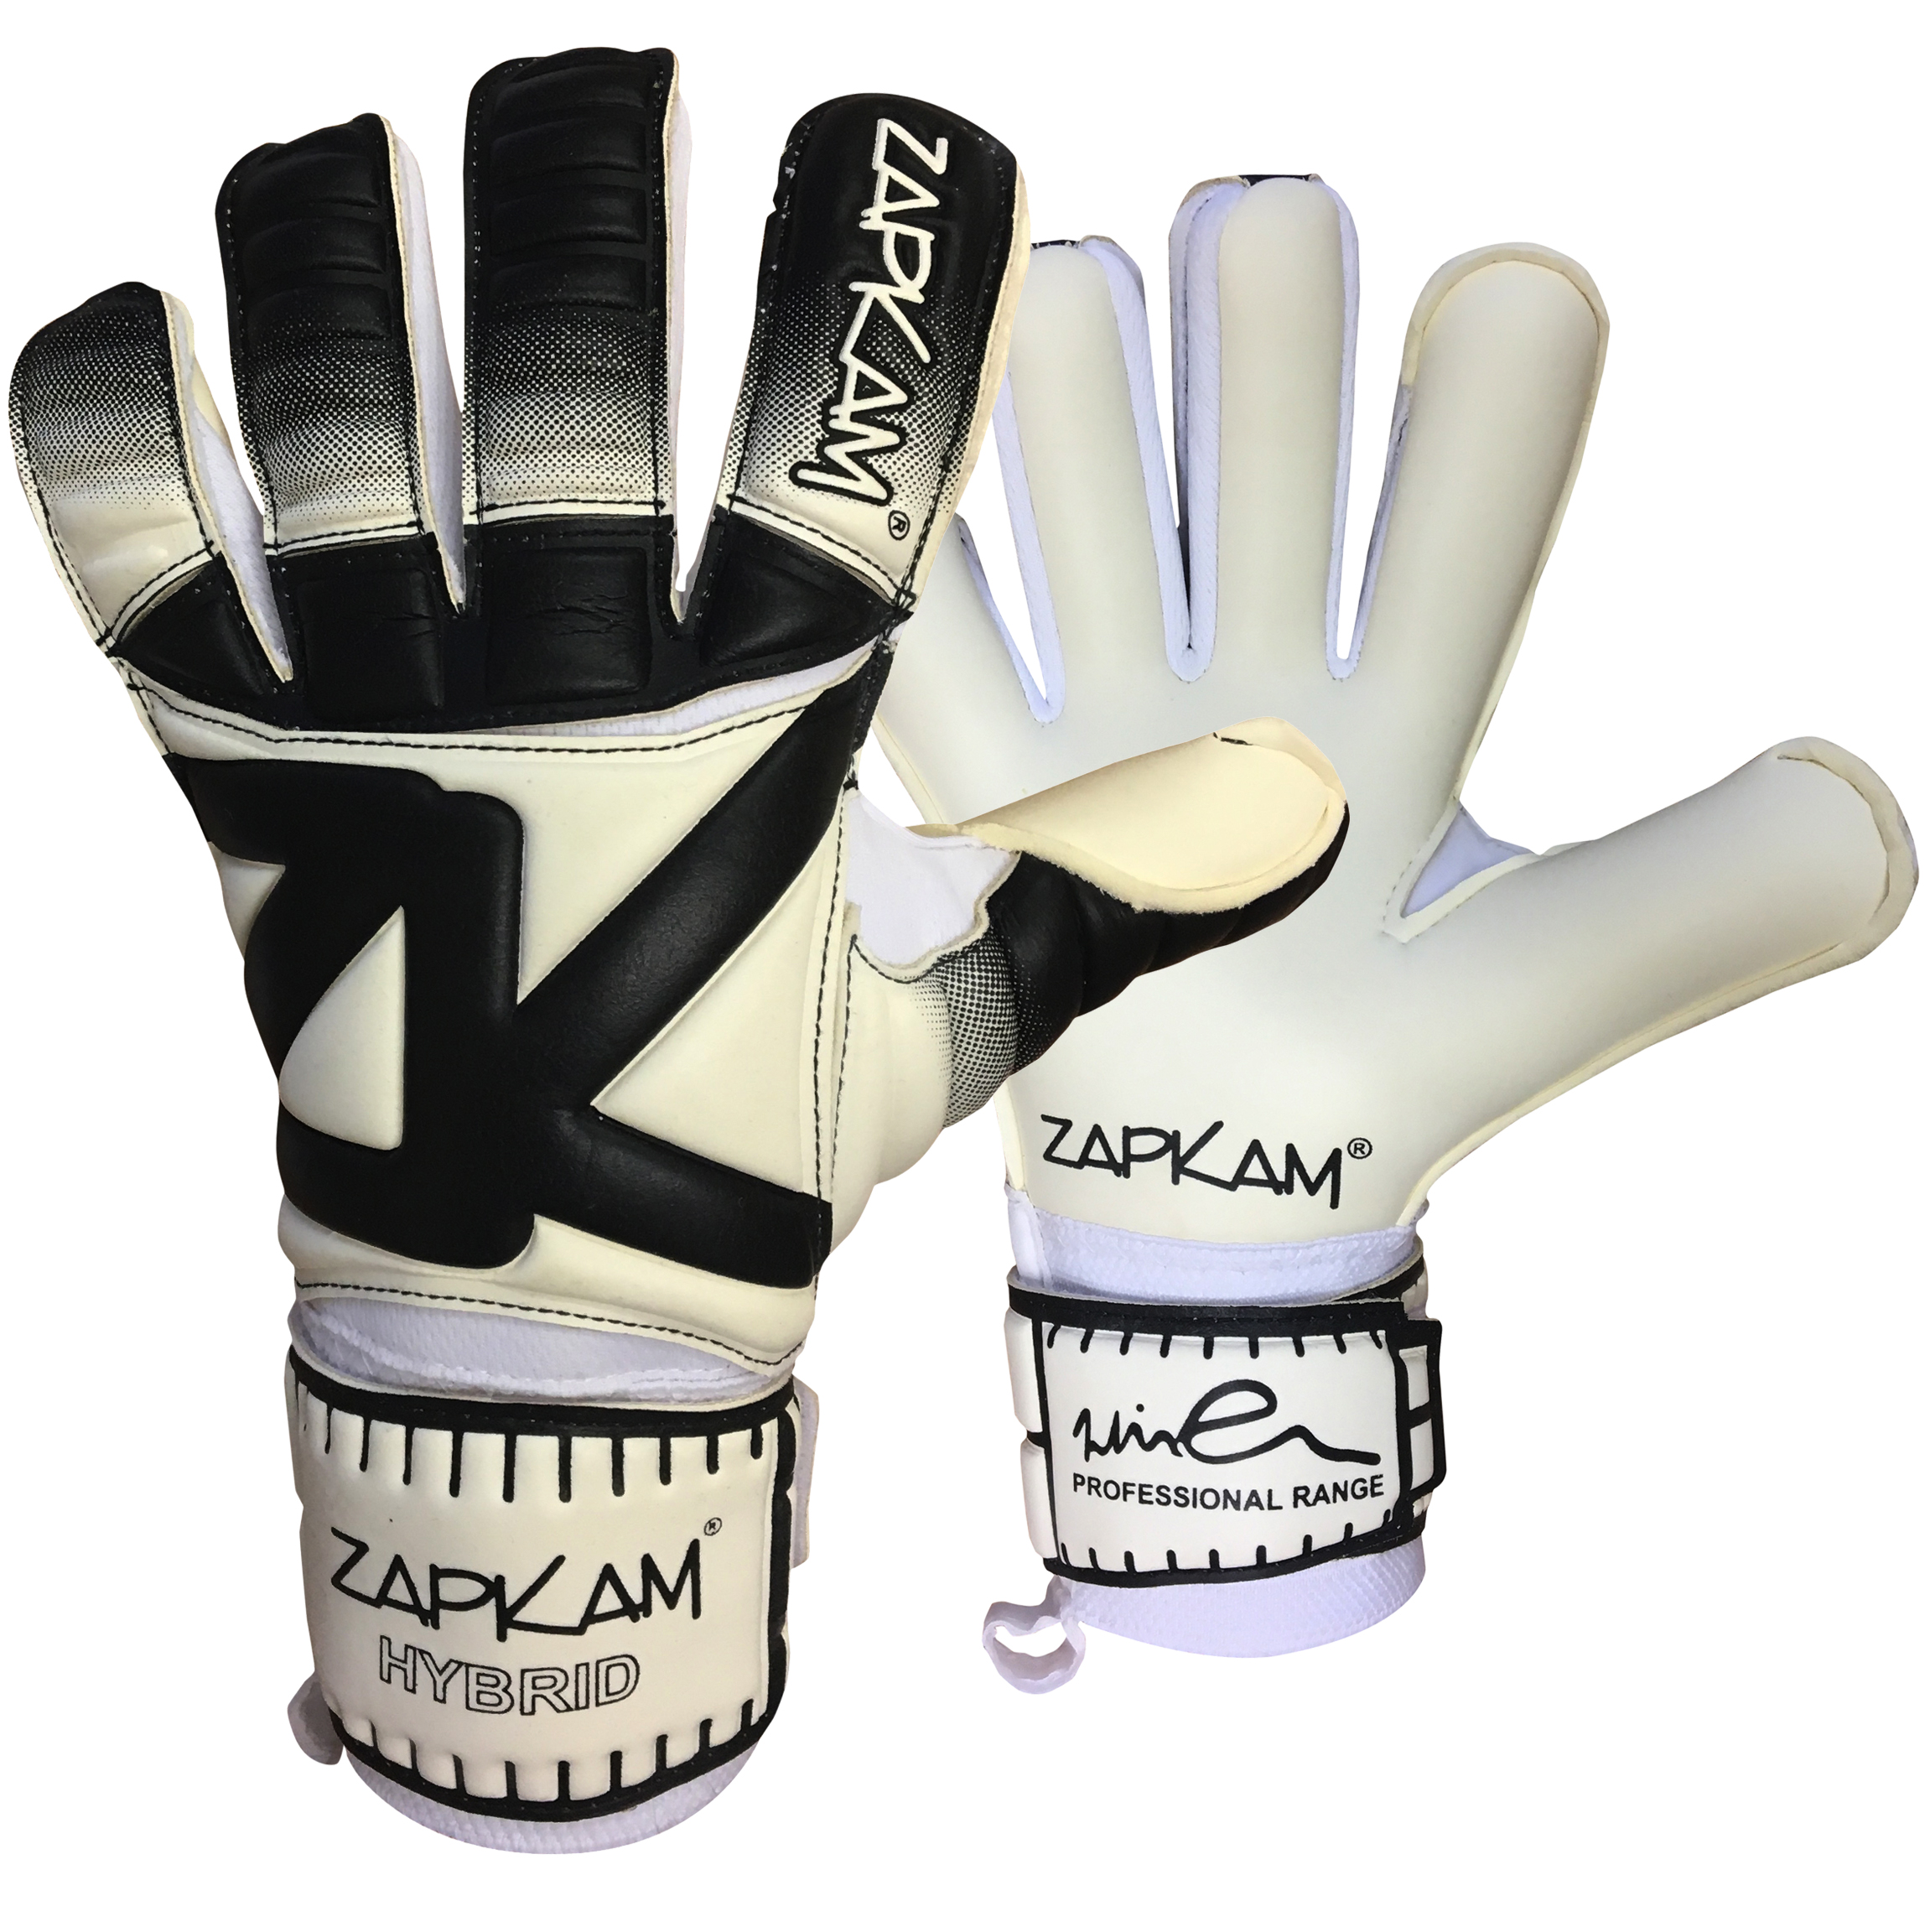 03-Hybrid-Cut-Goalkeeper-Gloves-1.jpg